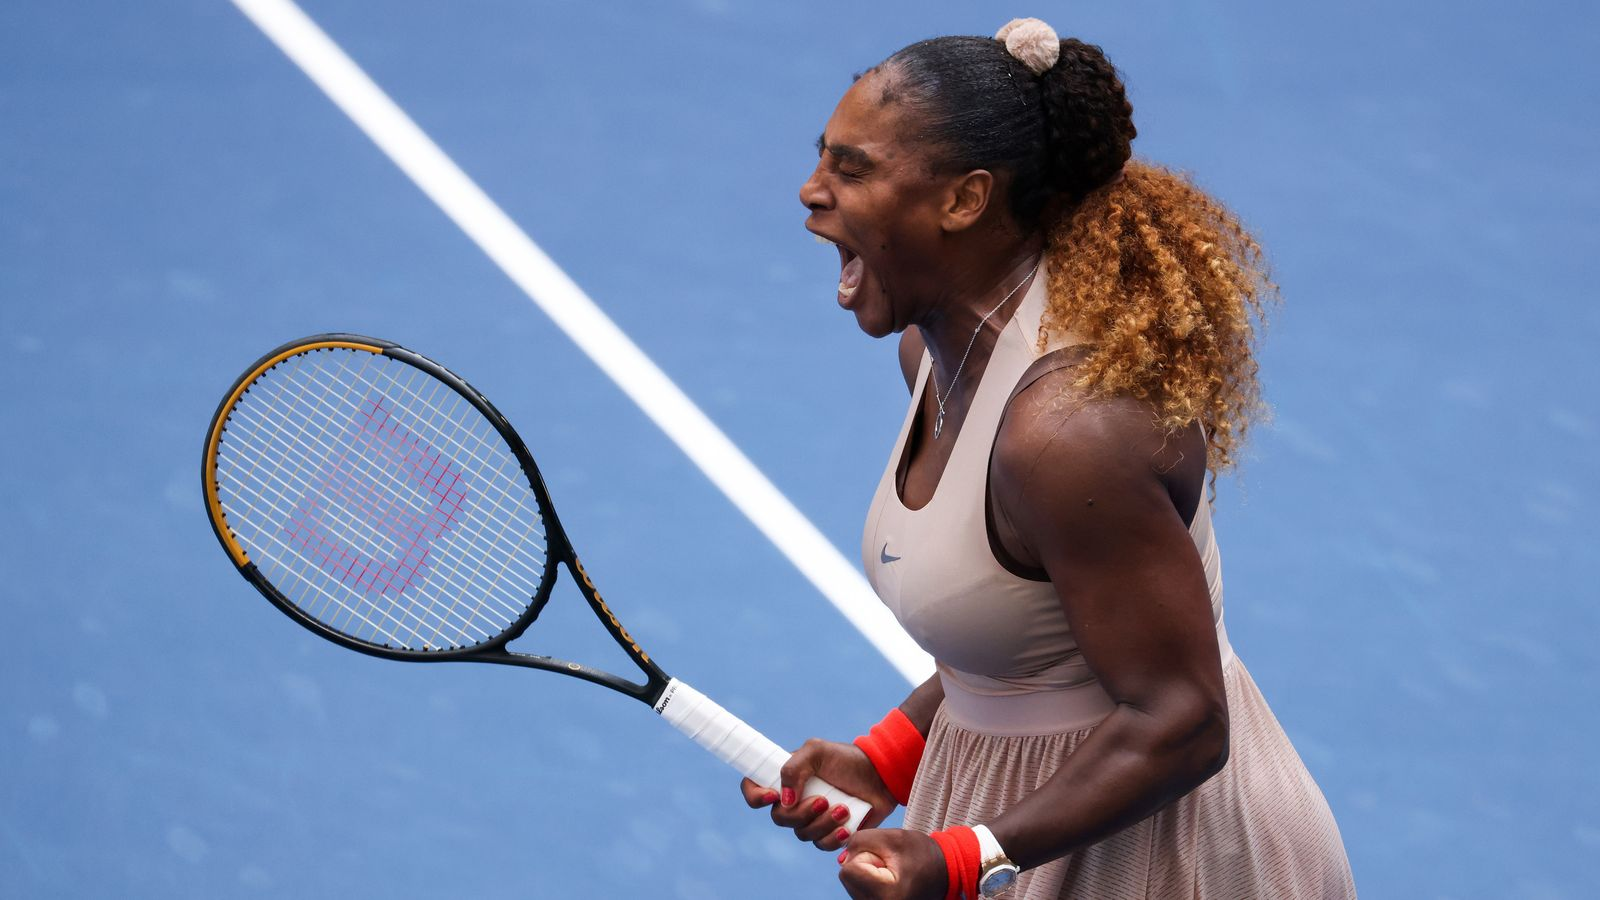 Williams battles back to reach